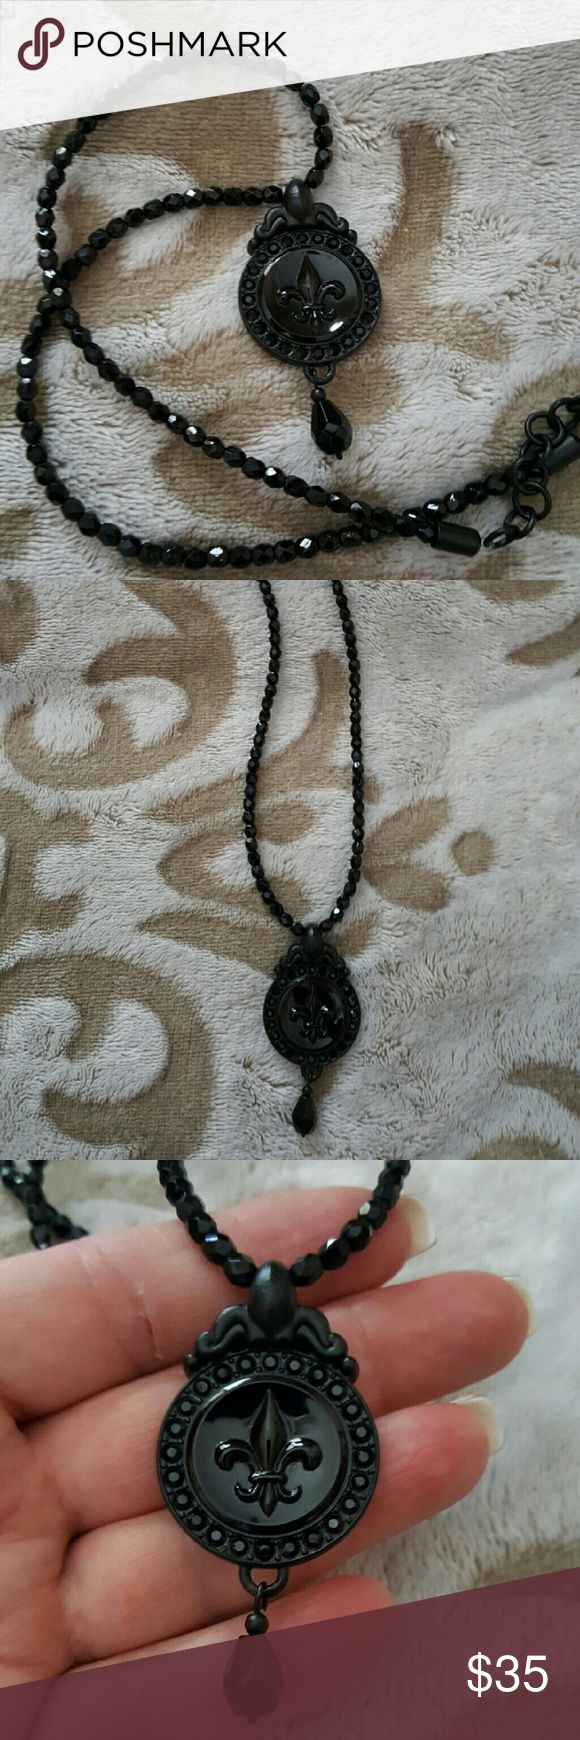 """Brighton ~ Dramatic Black Fleur-de-lis Necklace Brighton,  Gently Worn,  An exquisite & unusual design from Brighton Collectibles.  Done entirely in black, this is a dramatic and eye-catching piece. The faceted crystal chain measures approximately 18"""" while the fleur-de-lis pendant is approx 2""""long. One of my personal all time favorite designs from BC. Brighton Jewelry Necklaces"""